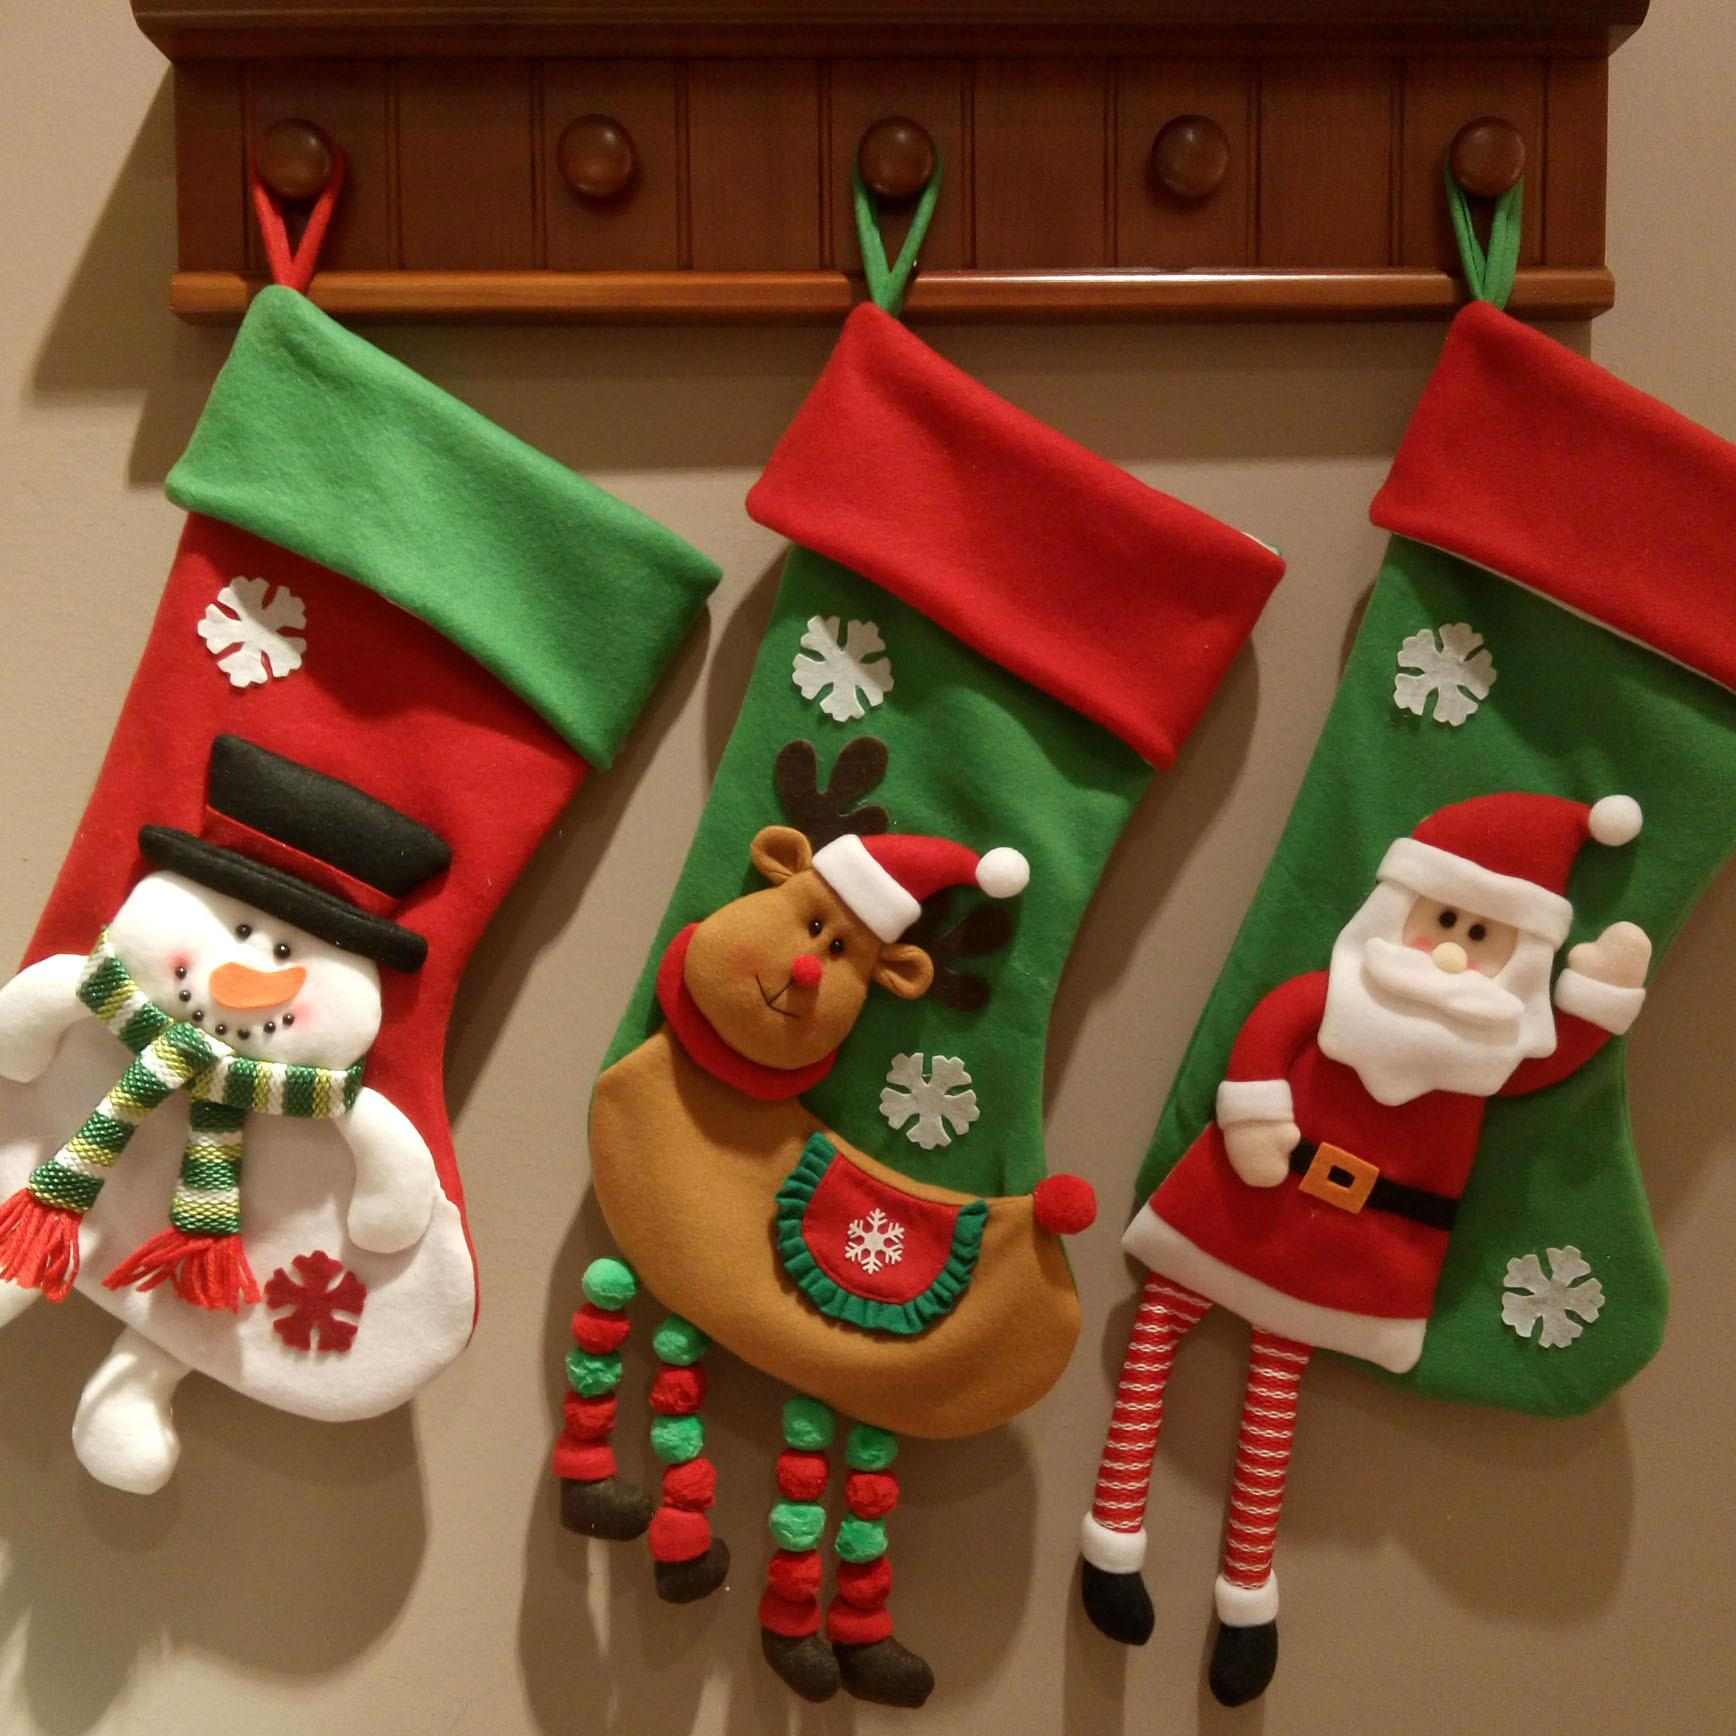 christmas gifts bags for christmas stockings socks christmas ornaments decorations bags best xmas decorations big christmas decorations outdoor from - Big Christmas Stockings